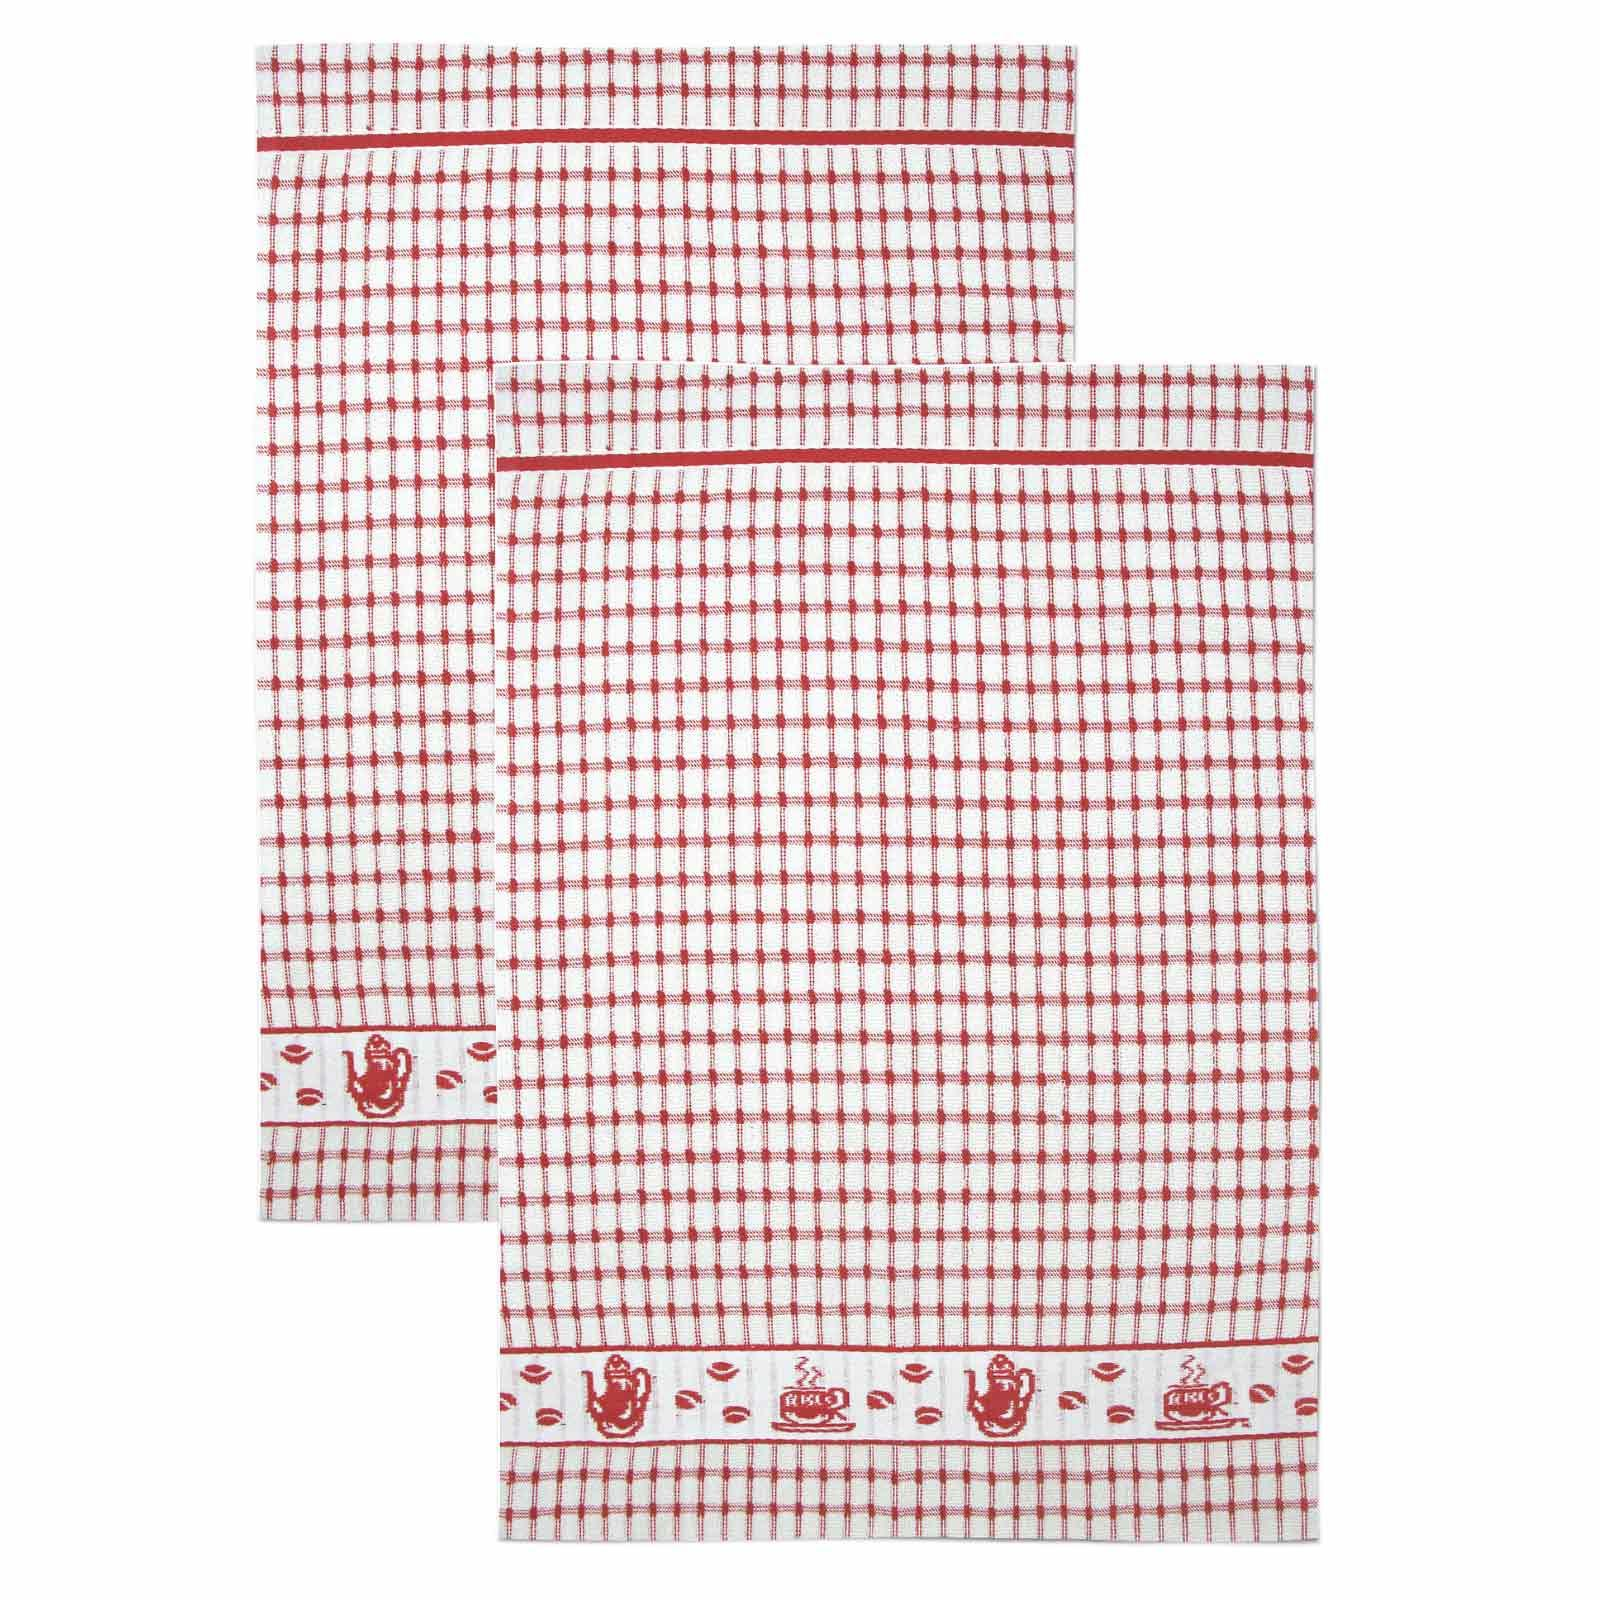 Packs-of-2-4-6-12-Tea-Towels-100-Cotton-Terry-Kitchen-Dish-Drying-Towel-Sets thumbnail 4